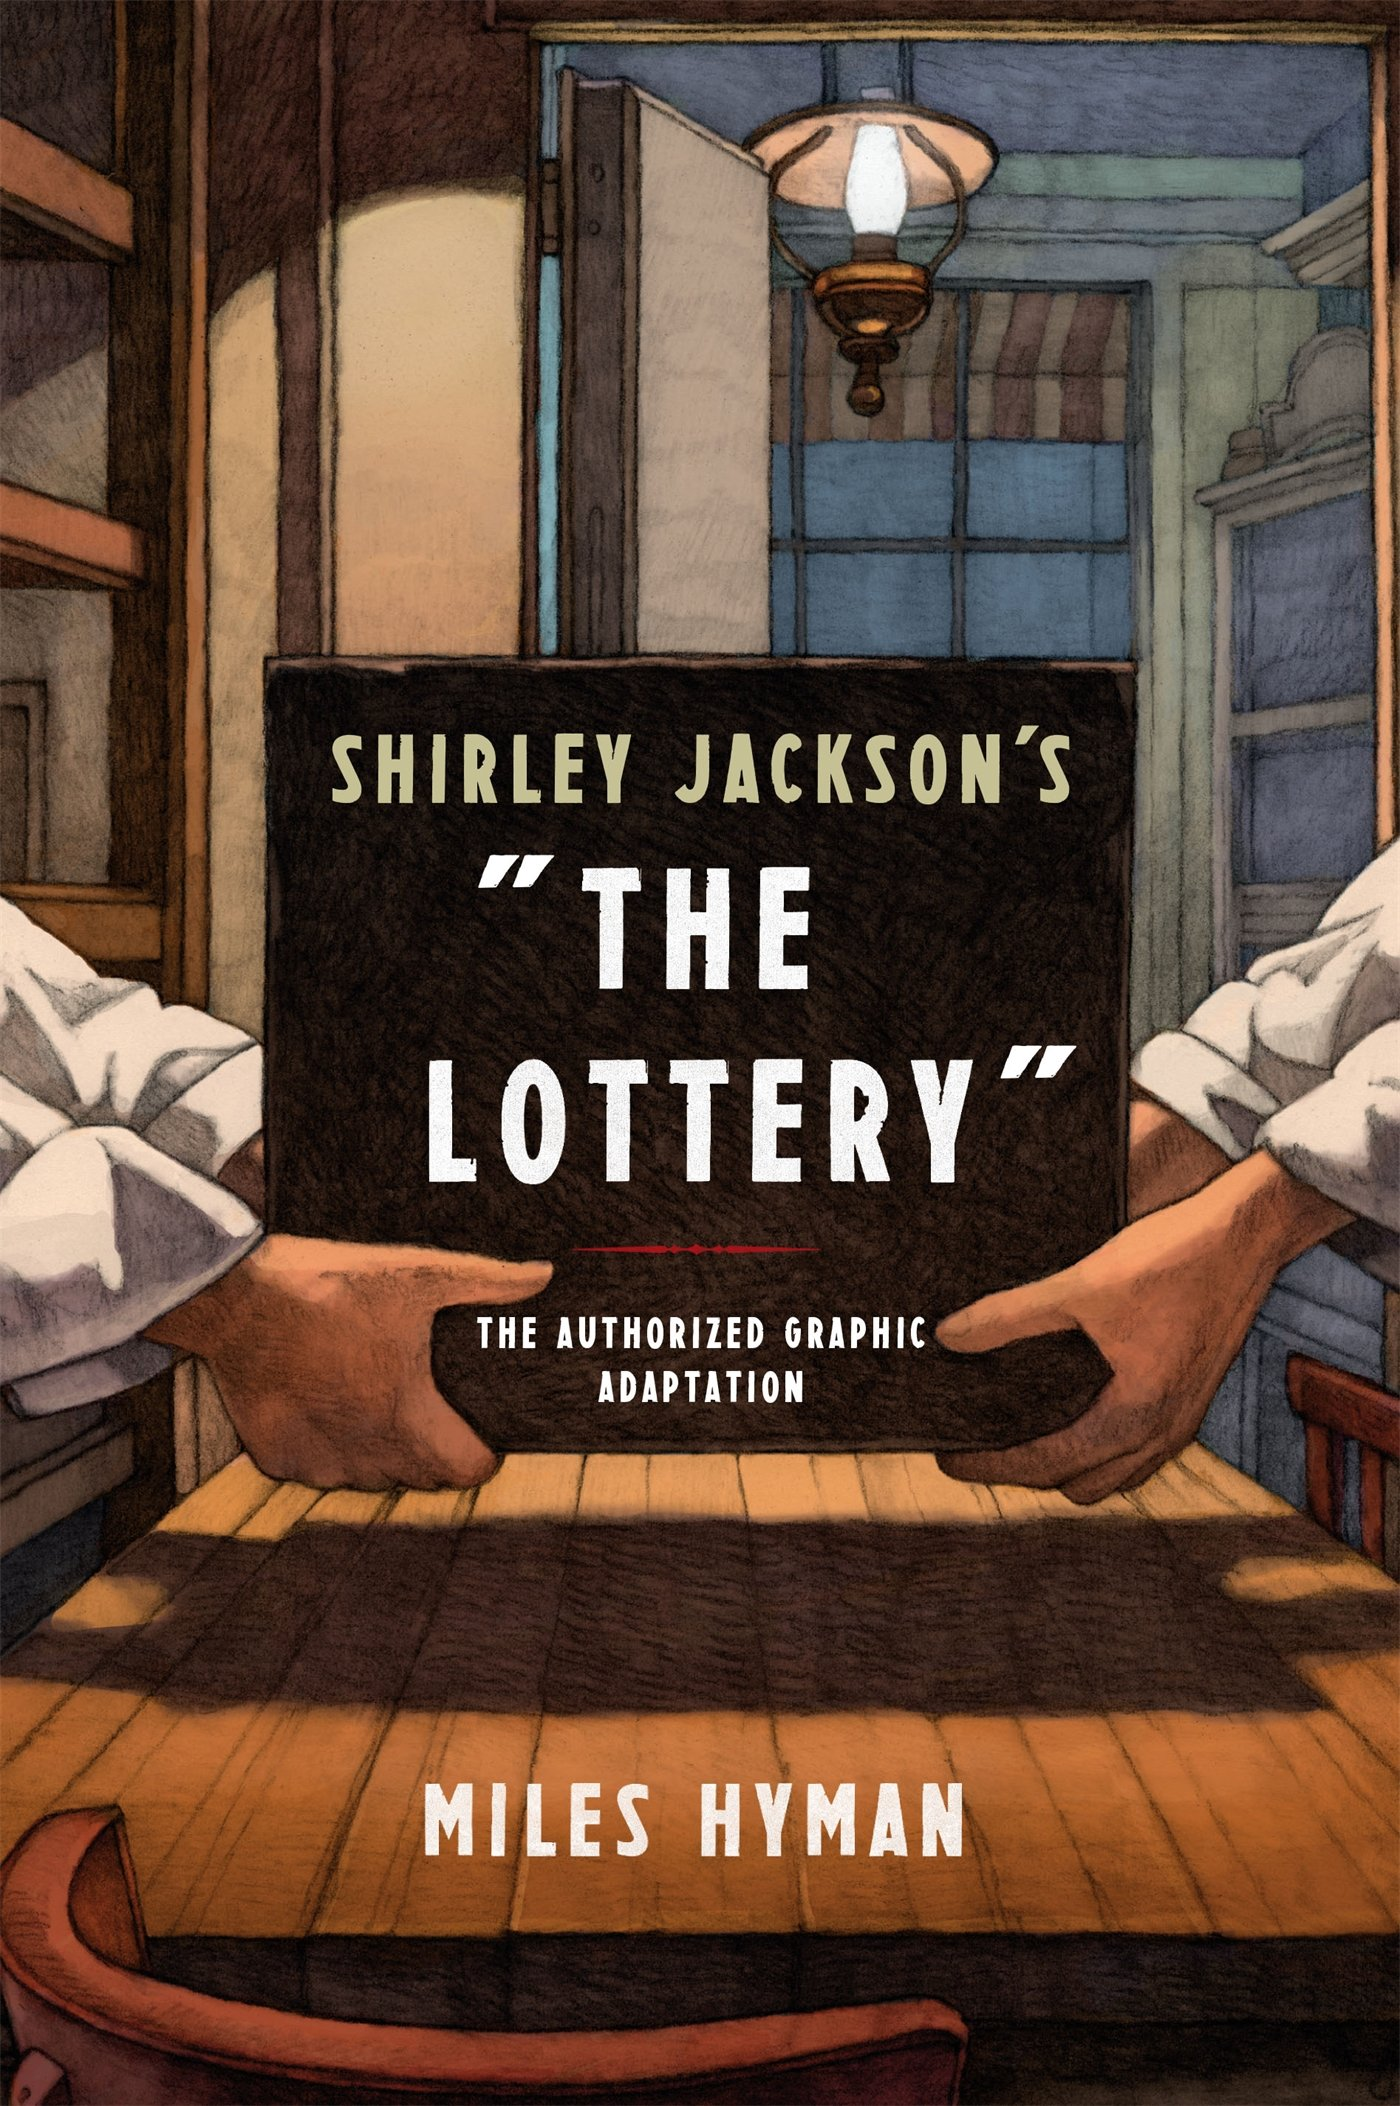 essays on the lottery by shirley jackson shirley jackson takes the  shirley jackson s the lottery the authorized graphic adaptation shirley jackson s the lottery the authorized